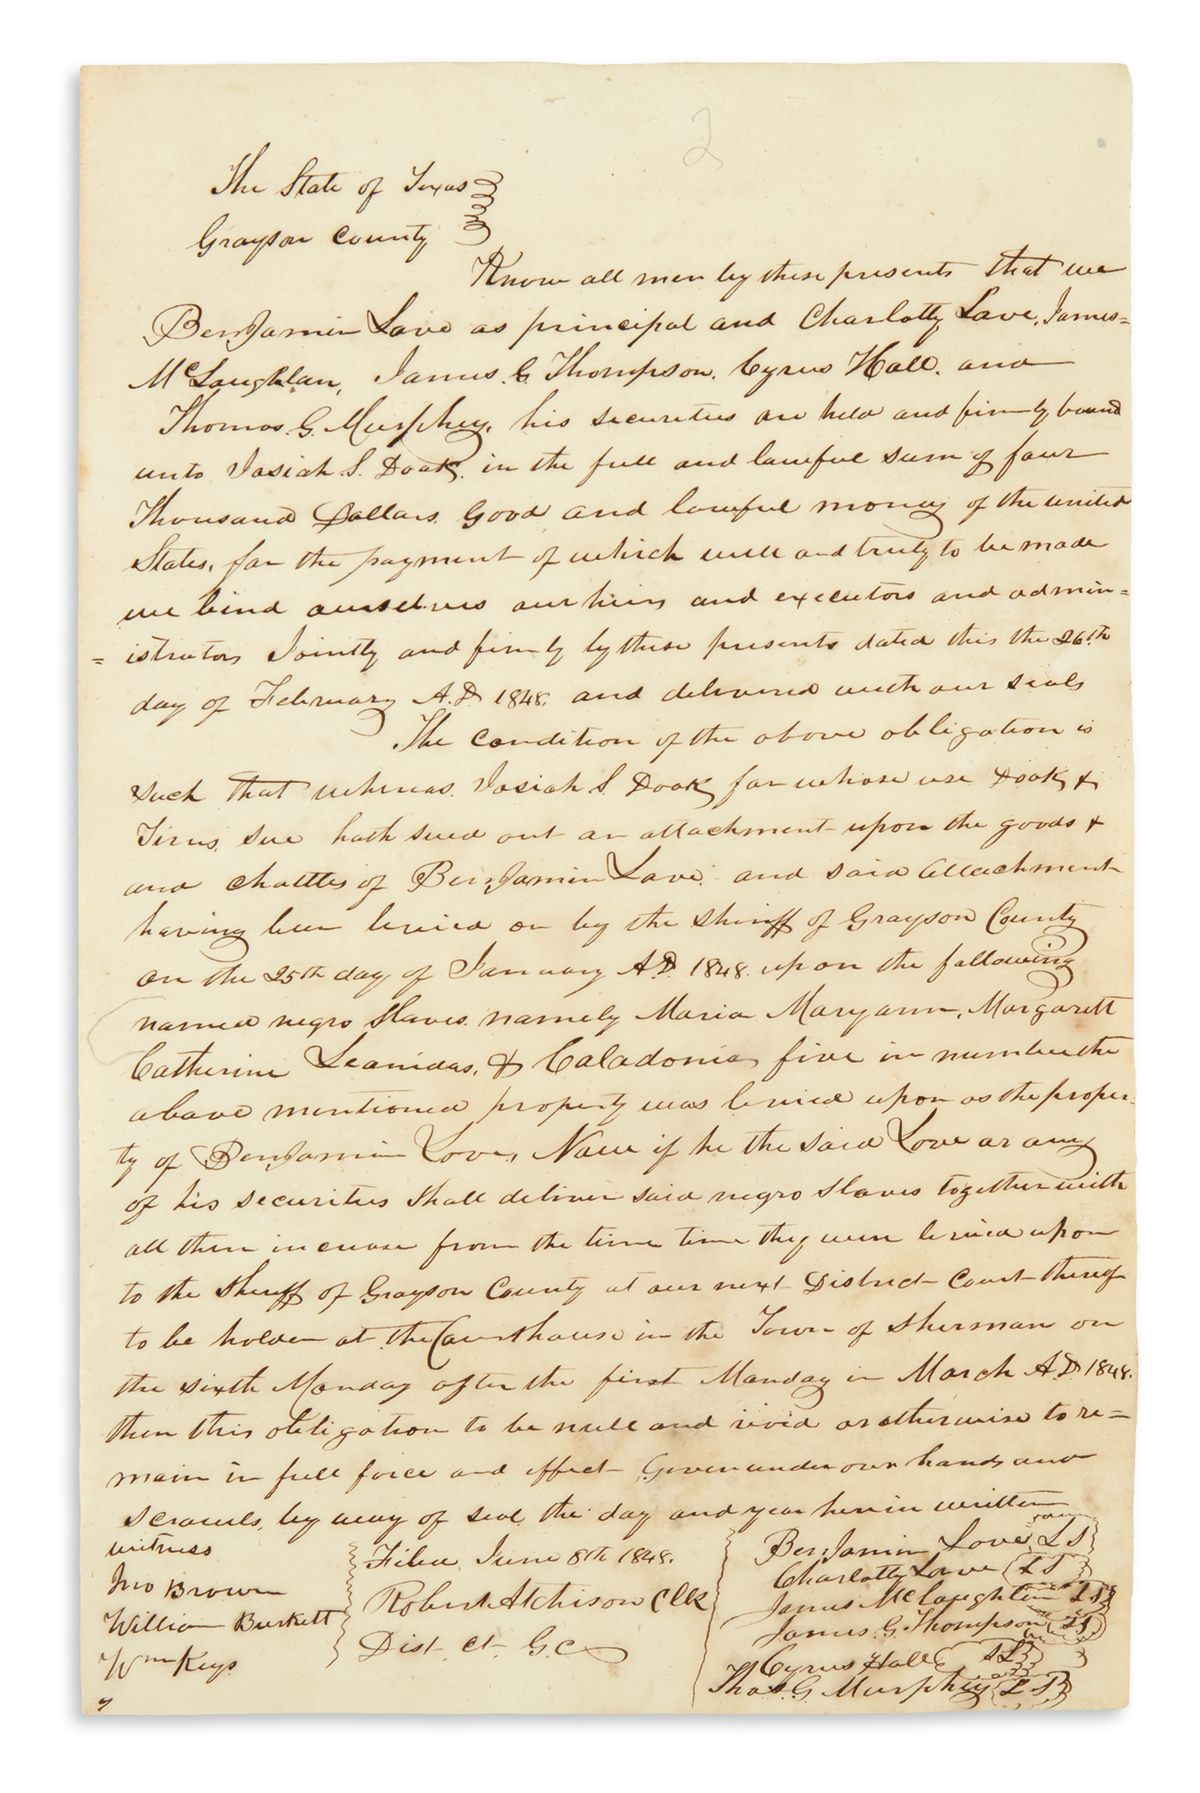 (SLAVERY AND ABOLITION.) Legal case file involving 5 slaves sold between American Indians in Texas.